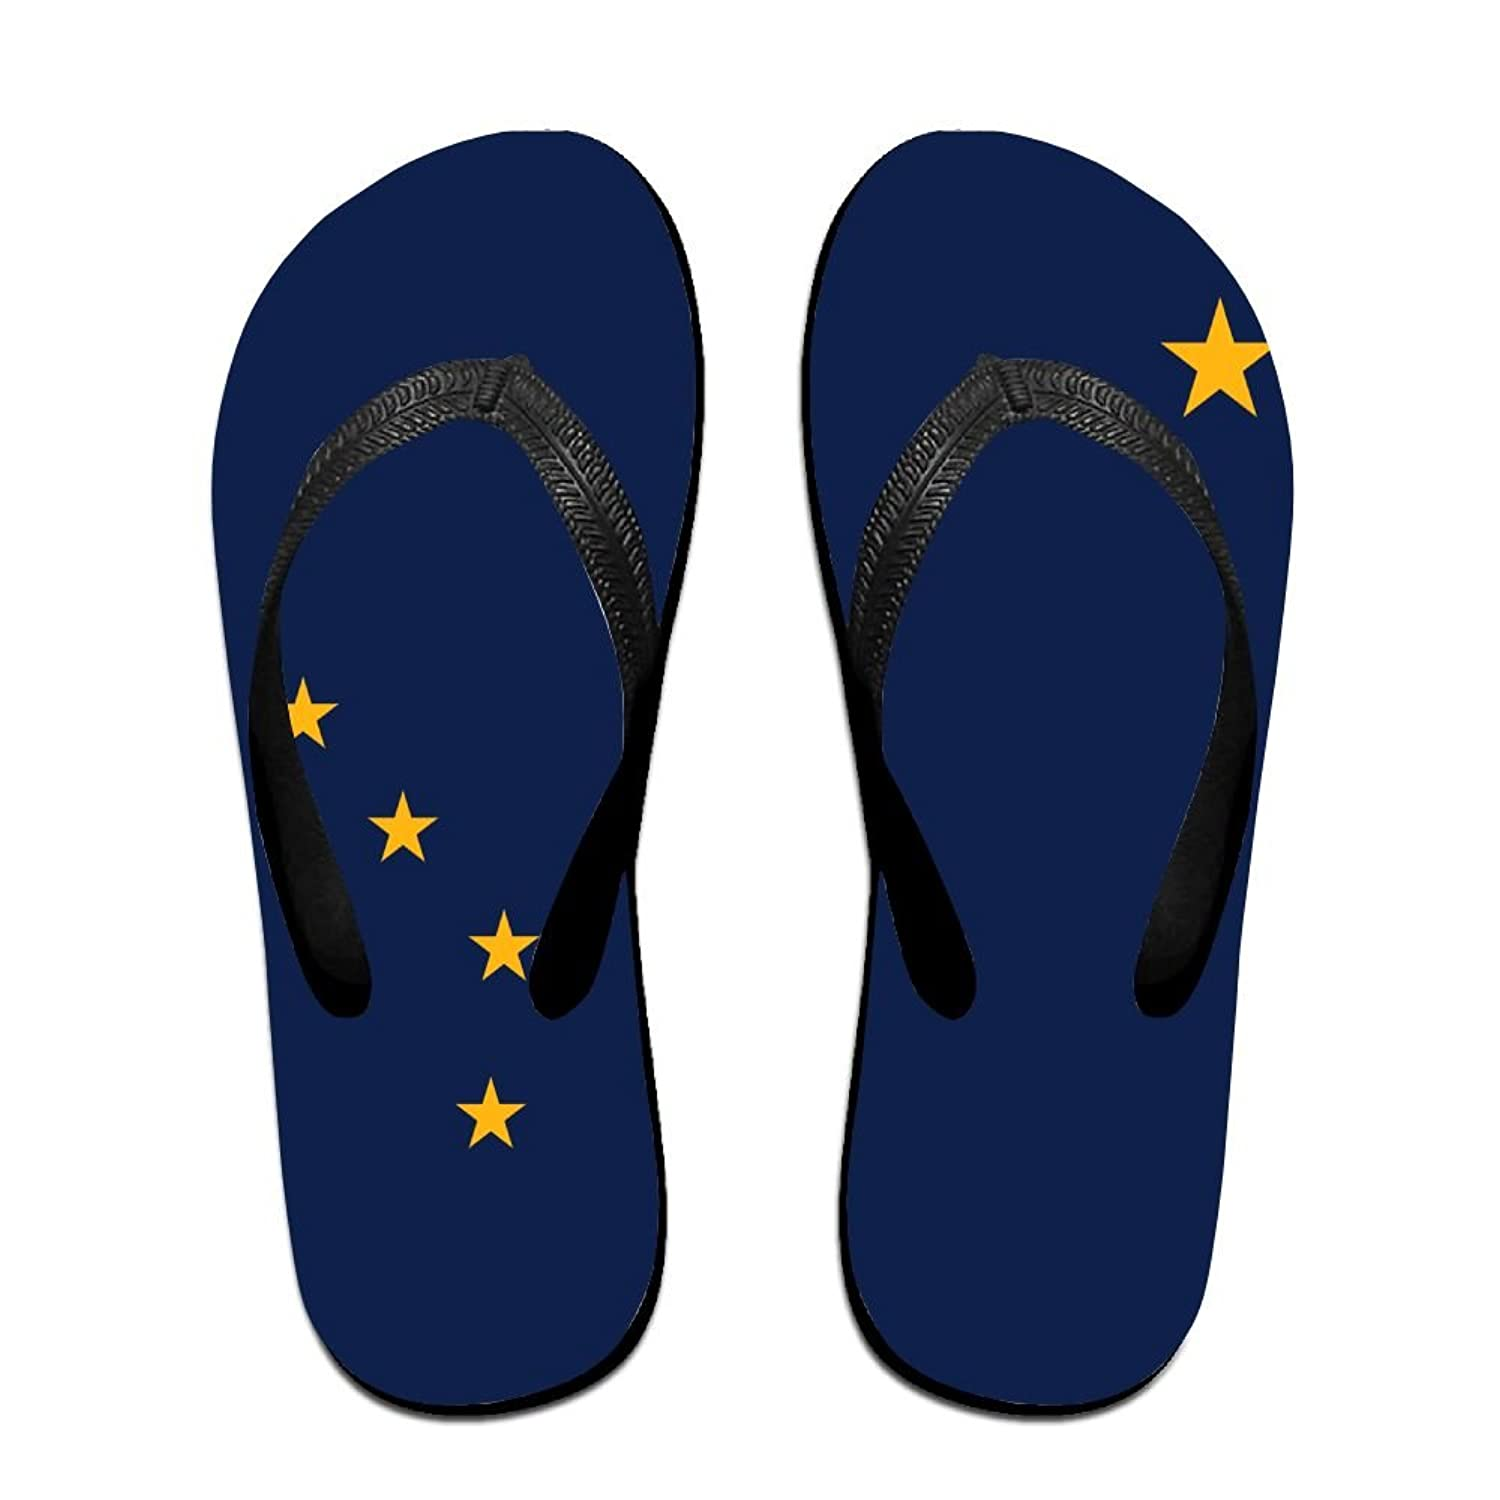 Flag Of Alaska Cool Flip Flops For Children Adults Men And Women Beach Sandals Pool Party Slippers